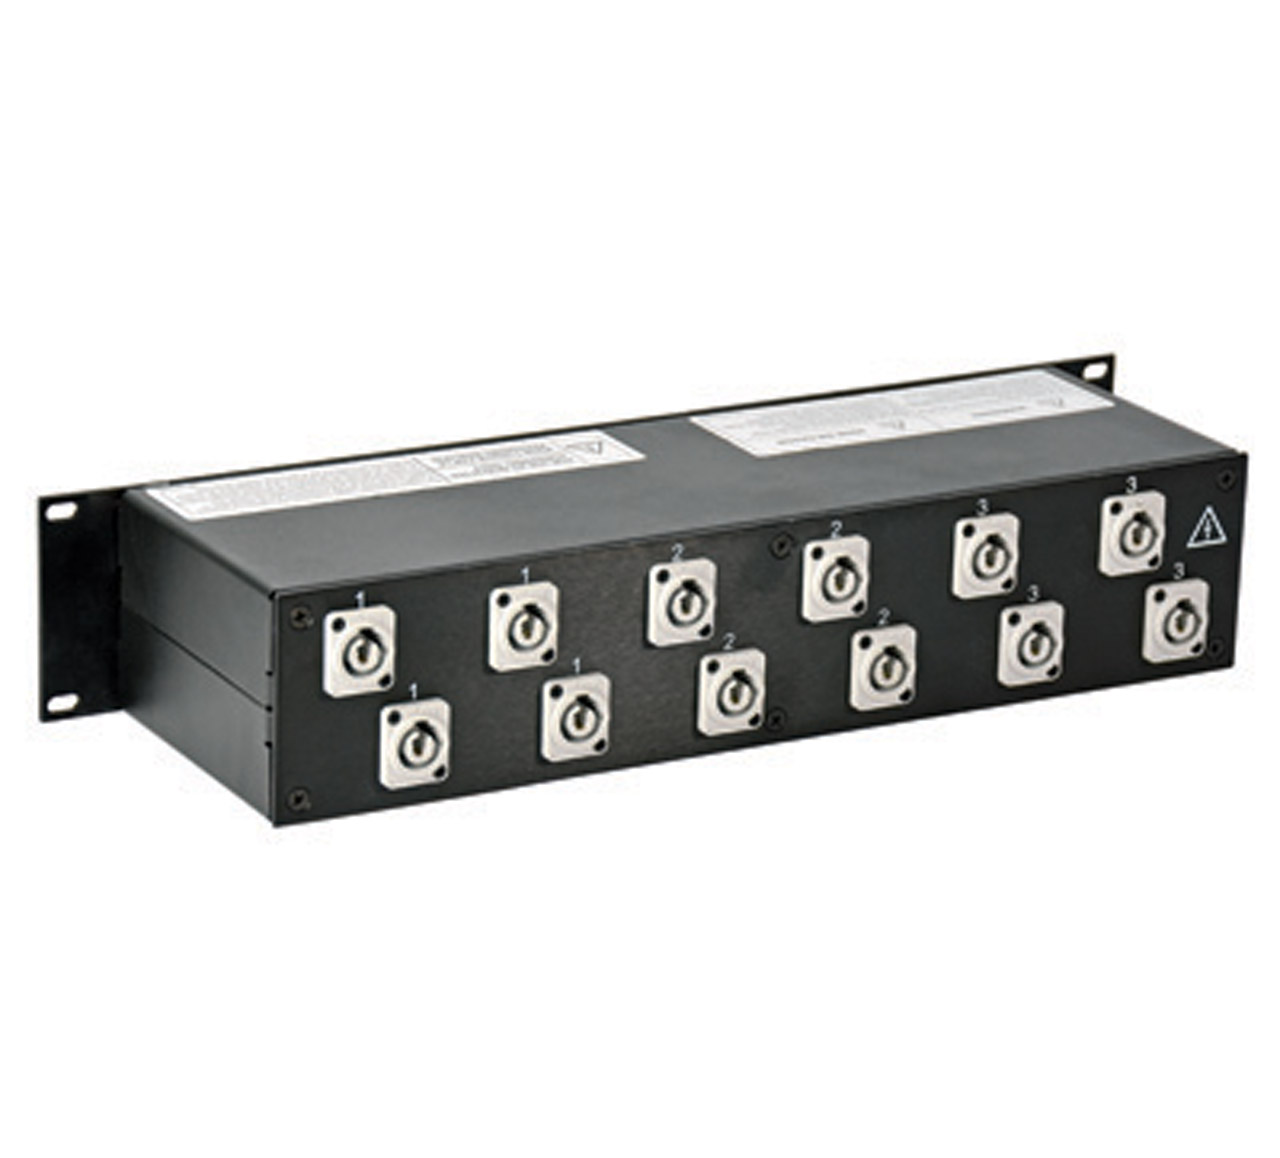 30 Amp 2RU Enclosed Rack, L21-30 to powerCON®